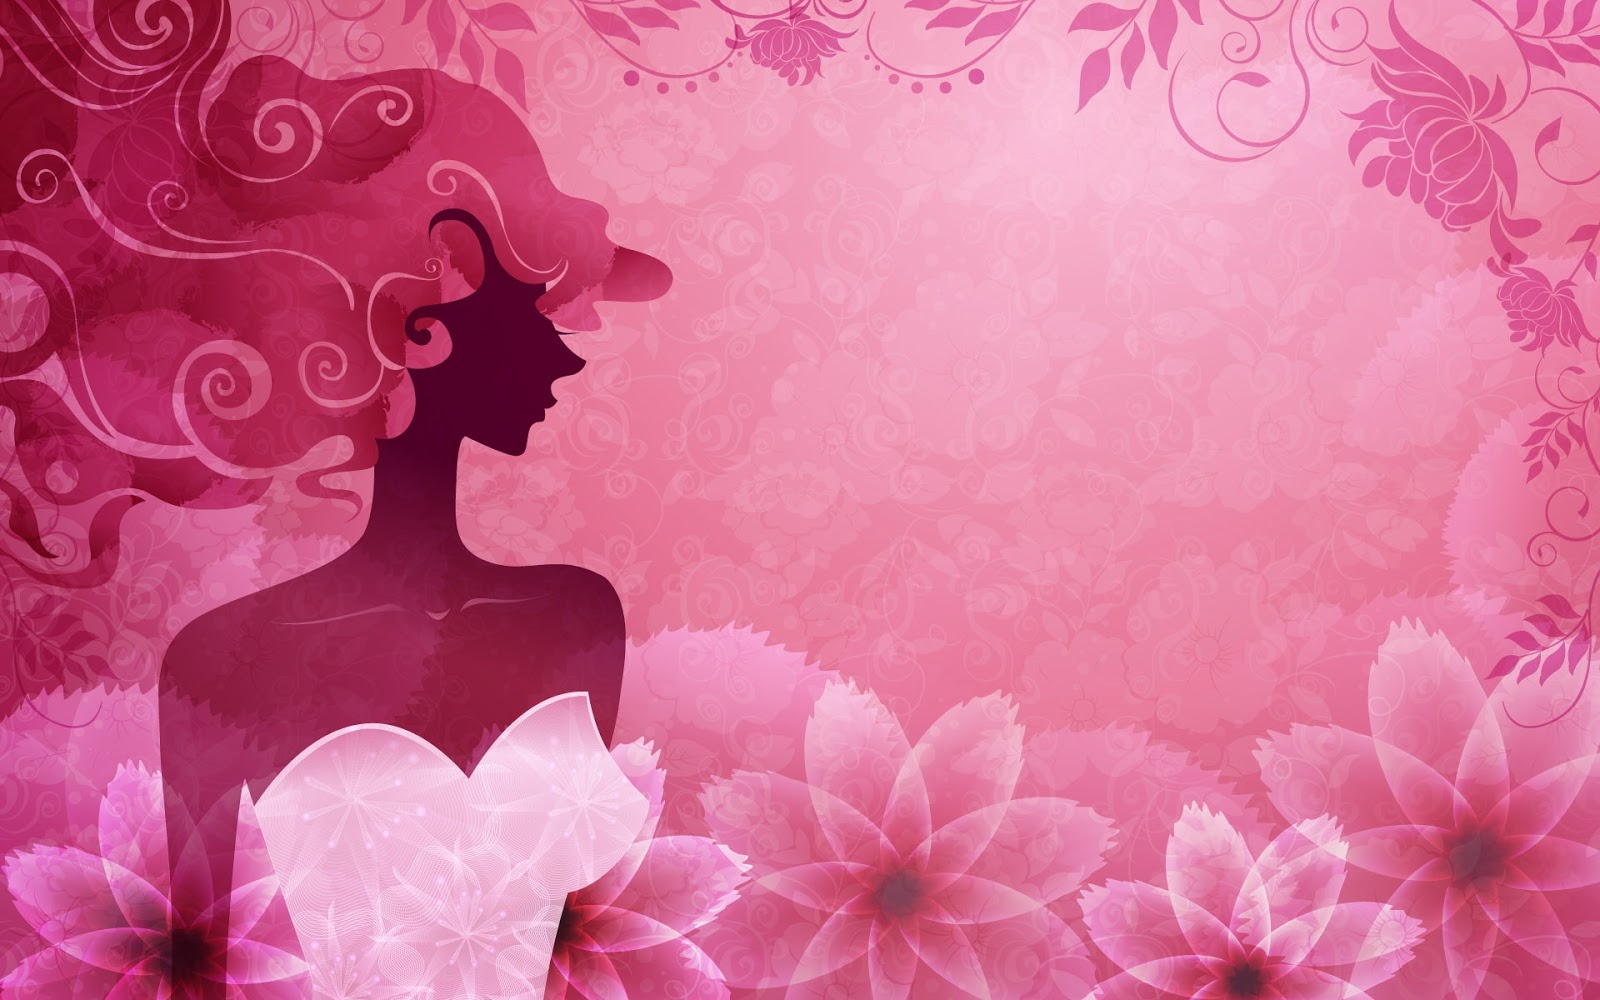 Vector-woman-pink-stylish_1920x1200